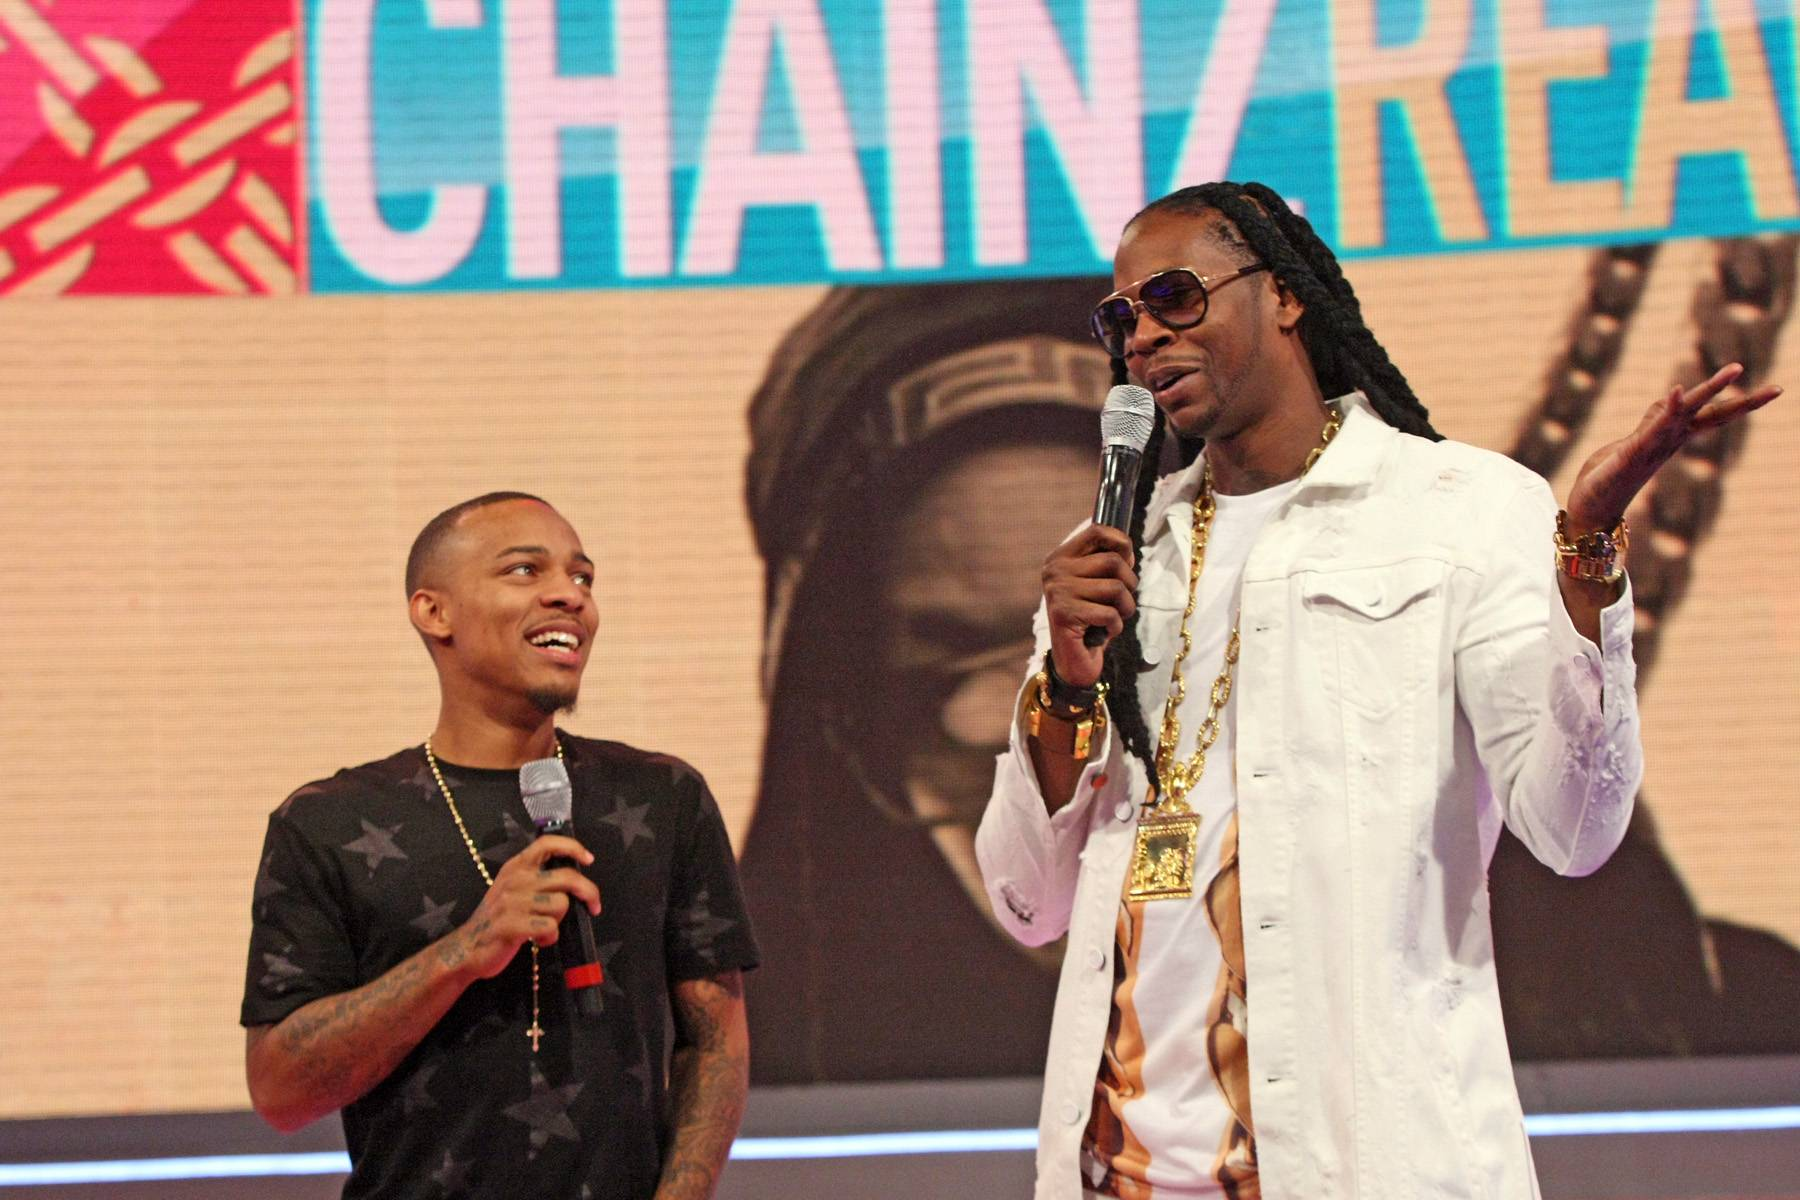 What Can I Say? - Bow Wow and 2 Chainz joke around while on set of 106. (Photo: Bennett Raglin/BET/Getty Images for BET)